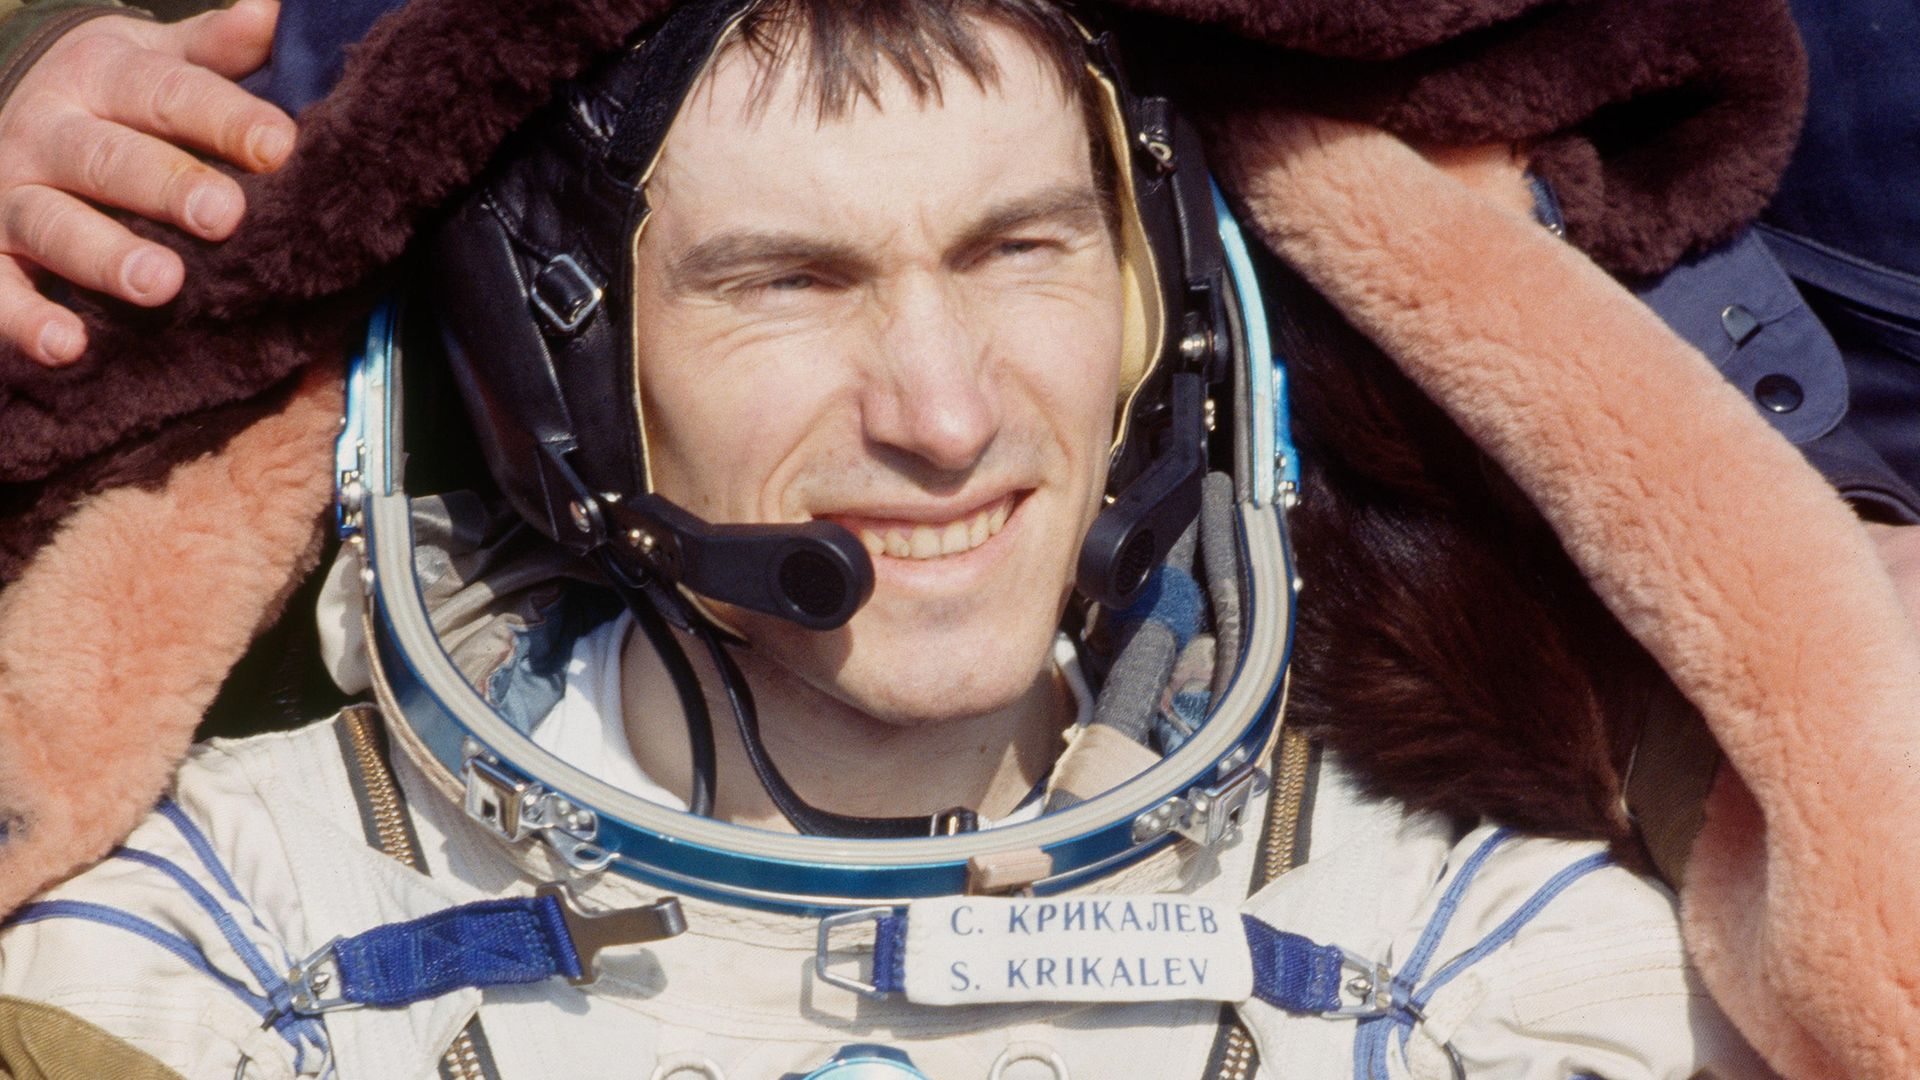 Cosmonaut Sergei Krikalev returns to Earth in his Soviet space suit, months after the demise of the country - Credit: Sygma via Getty Images